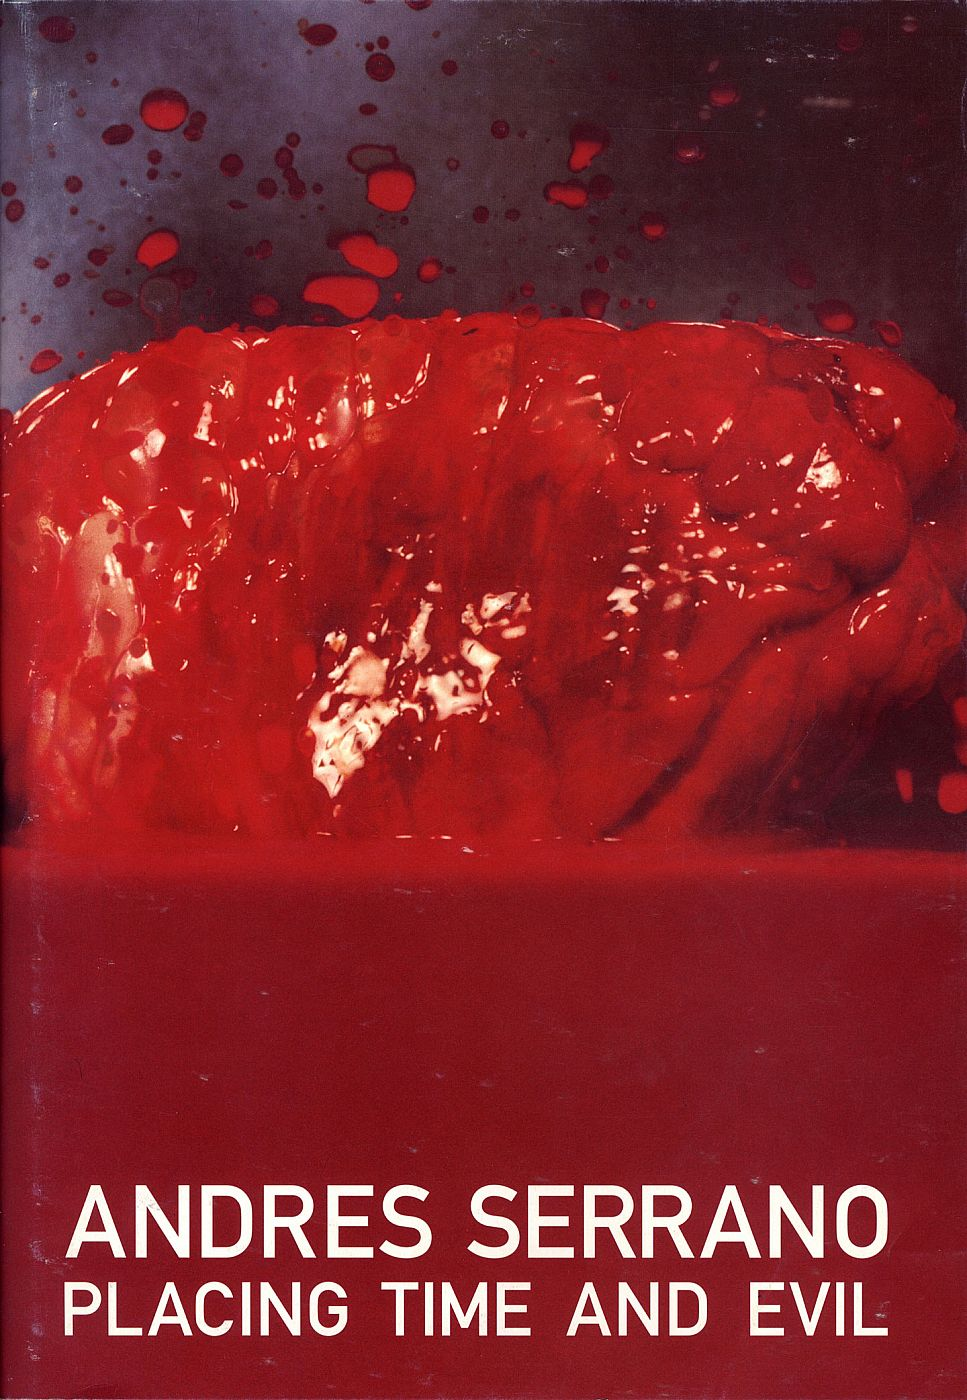 Andres Serrano: Placing Time and Evil